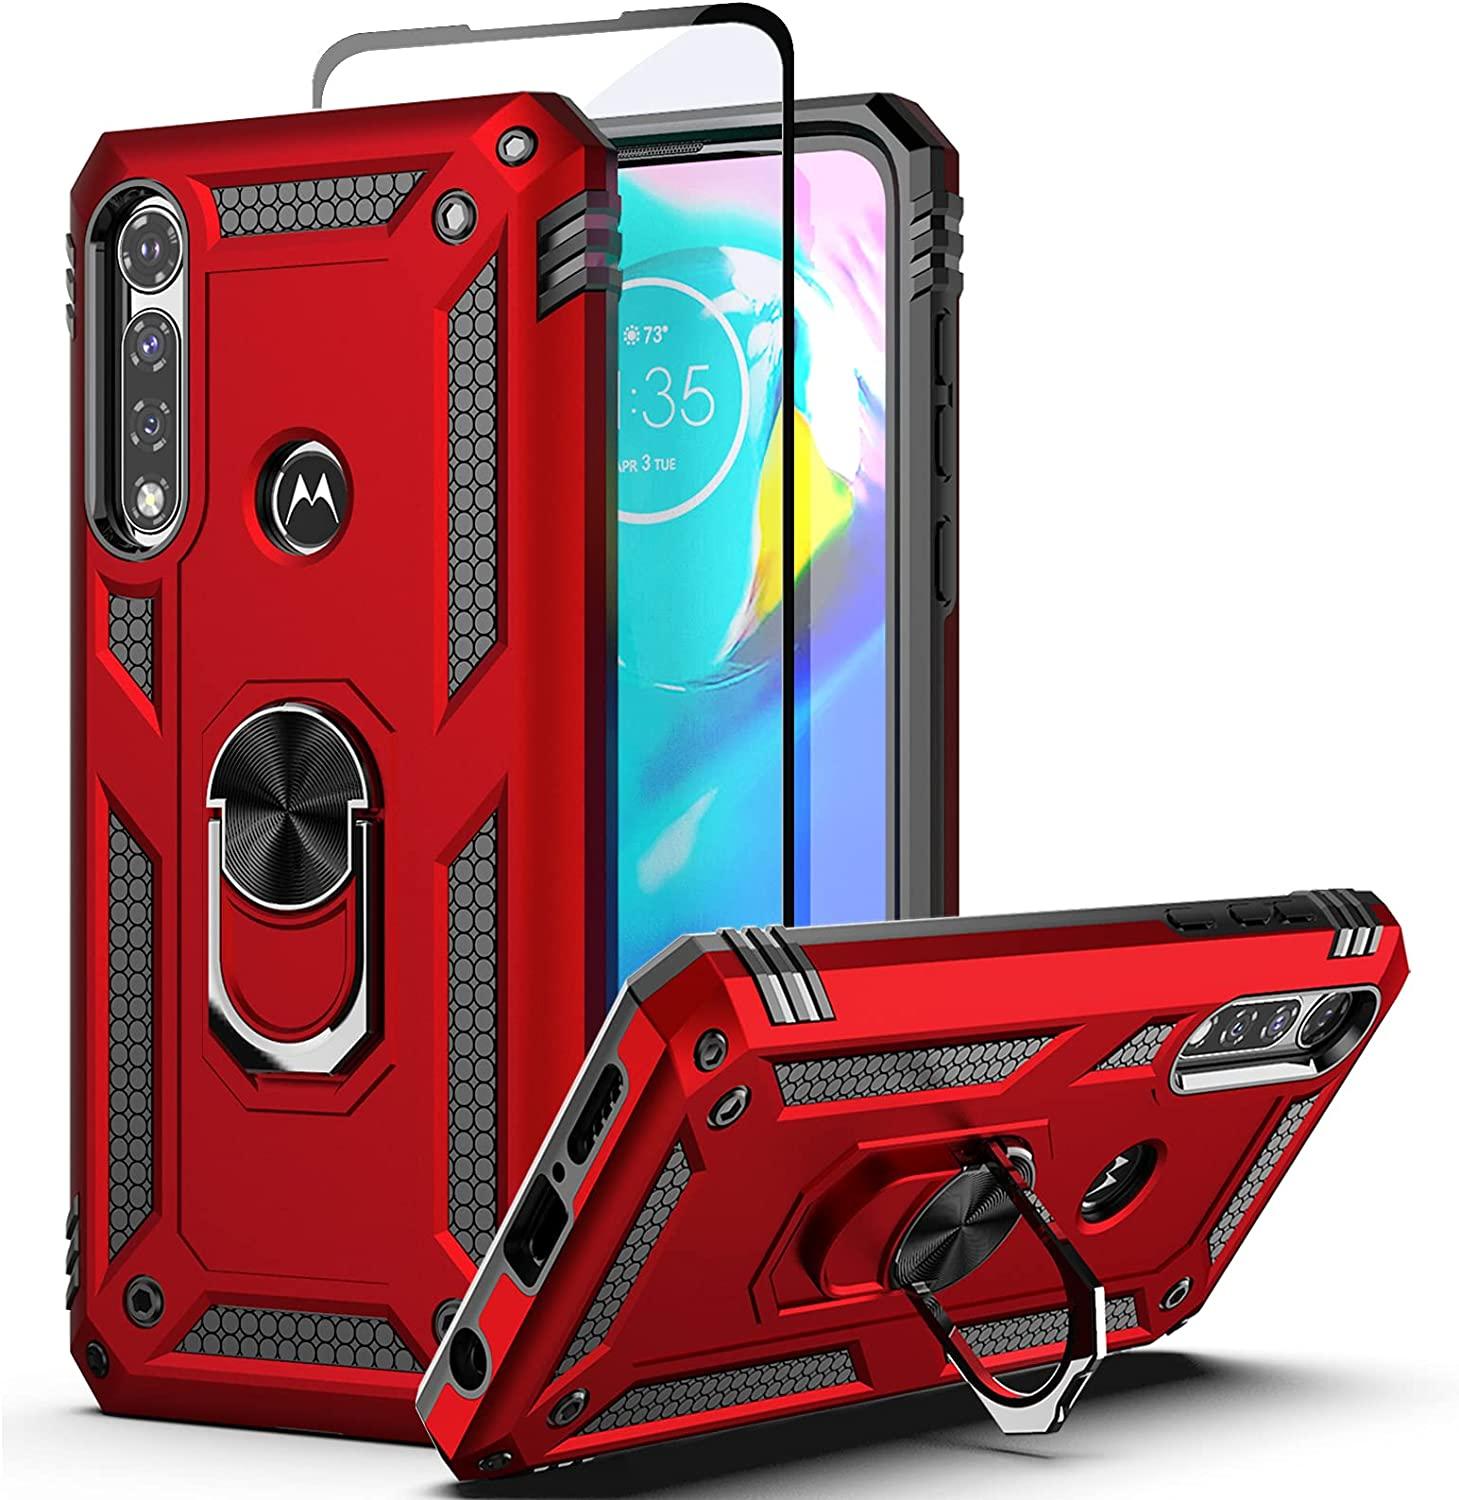 Dretal Moto G Power Case with Tempered Glass Screen Protector, Military Grade Shockproof Protective Case Cover with Rotating Holder Kickstand for Motorola Moto G Power 2020 (JS-Red)